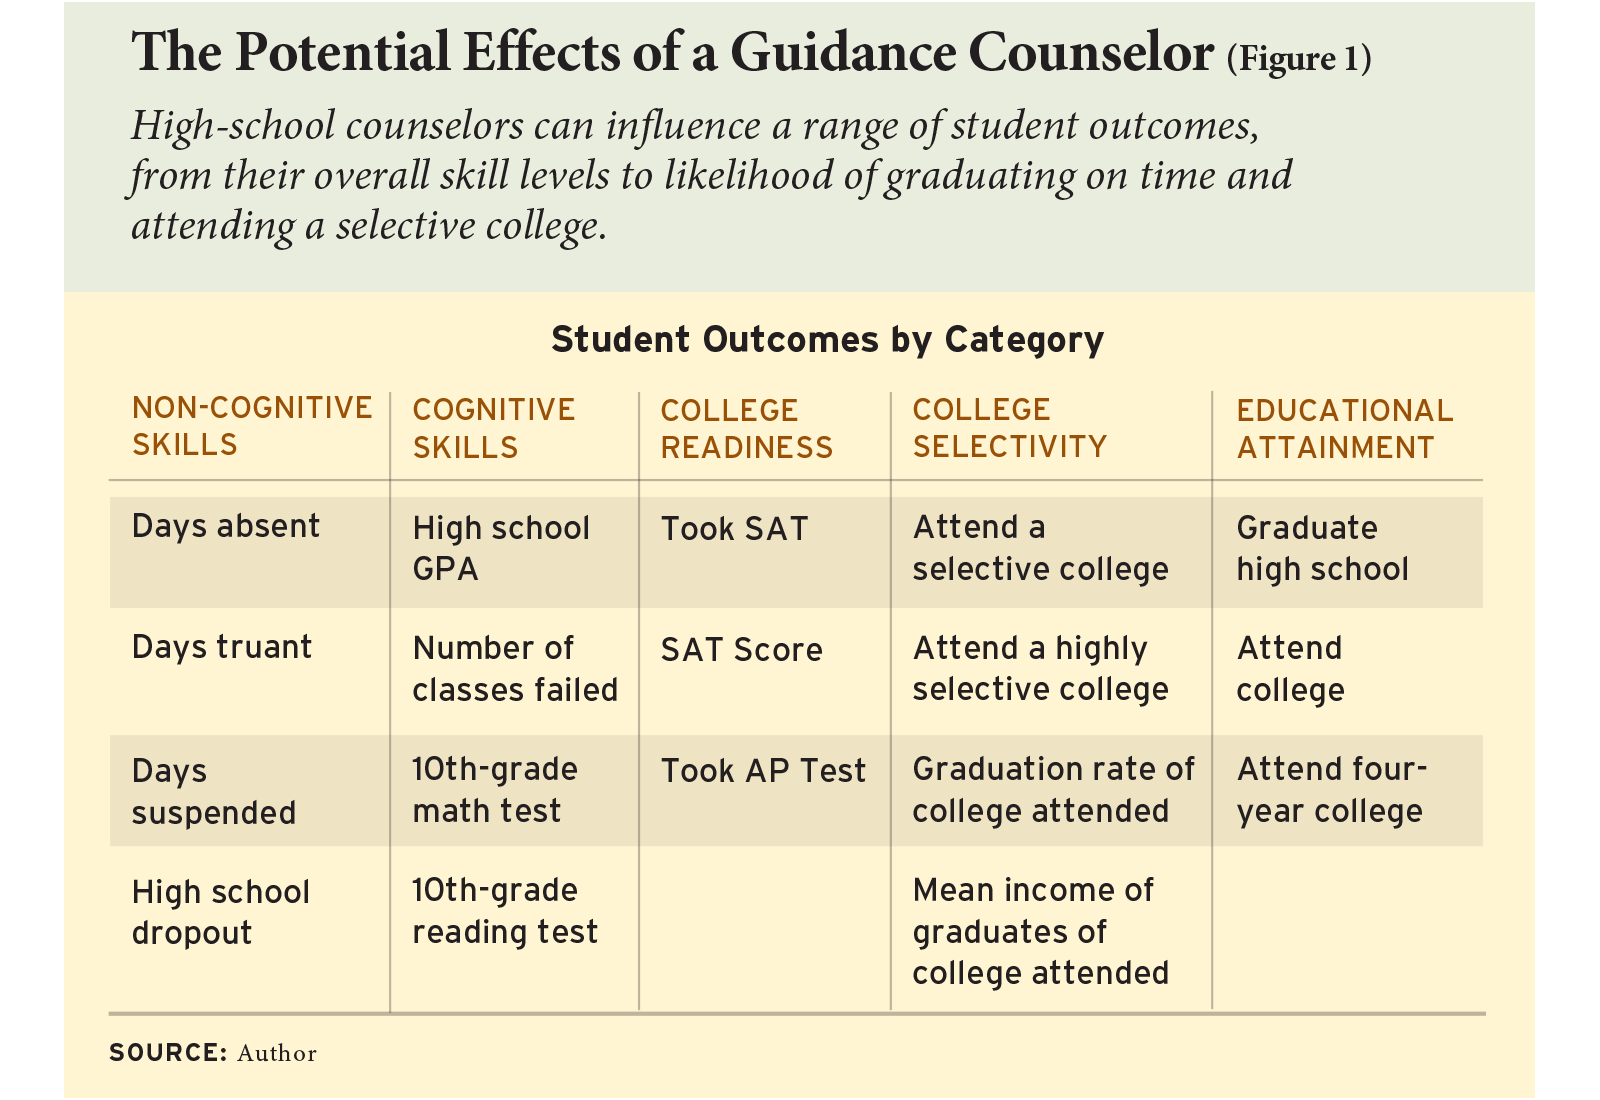 The Potential Effects of a Guidance Counselor (Figure 1)